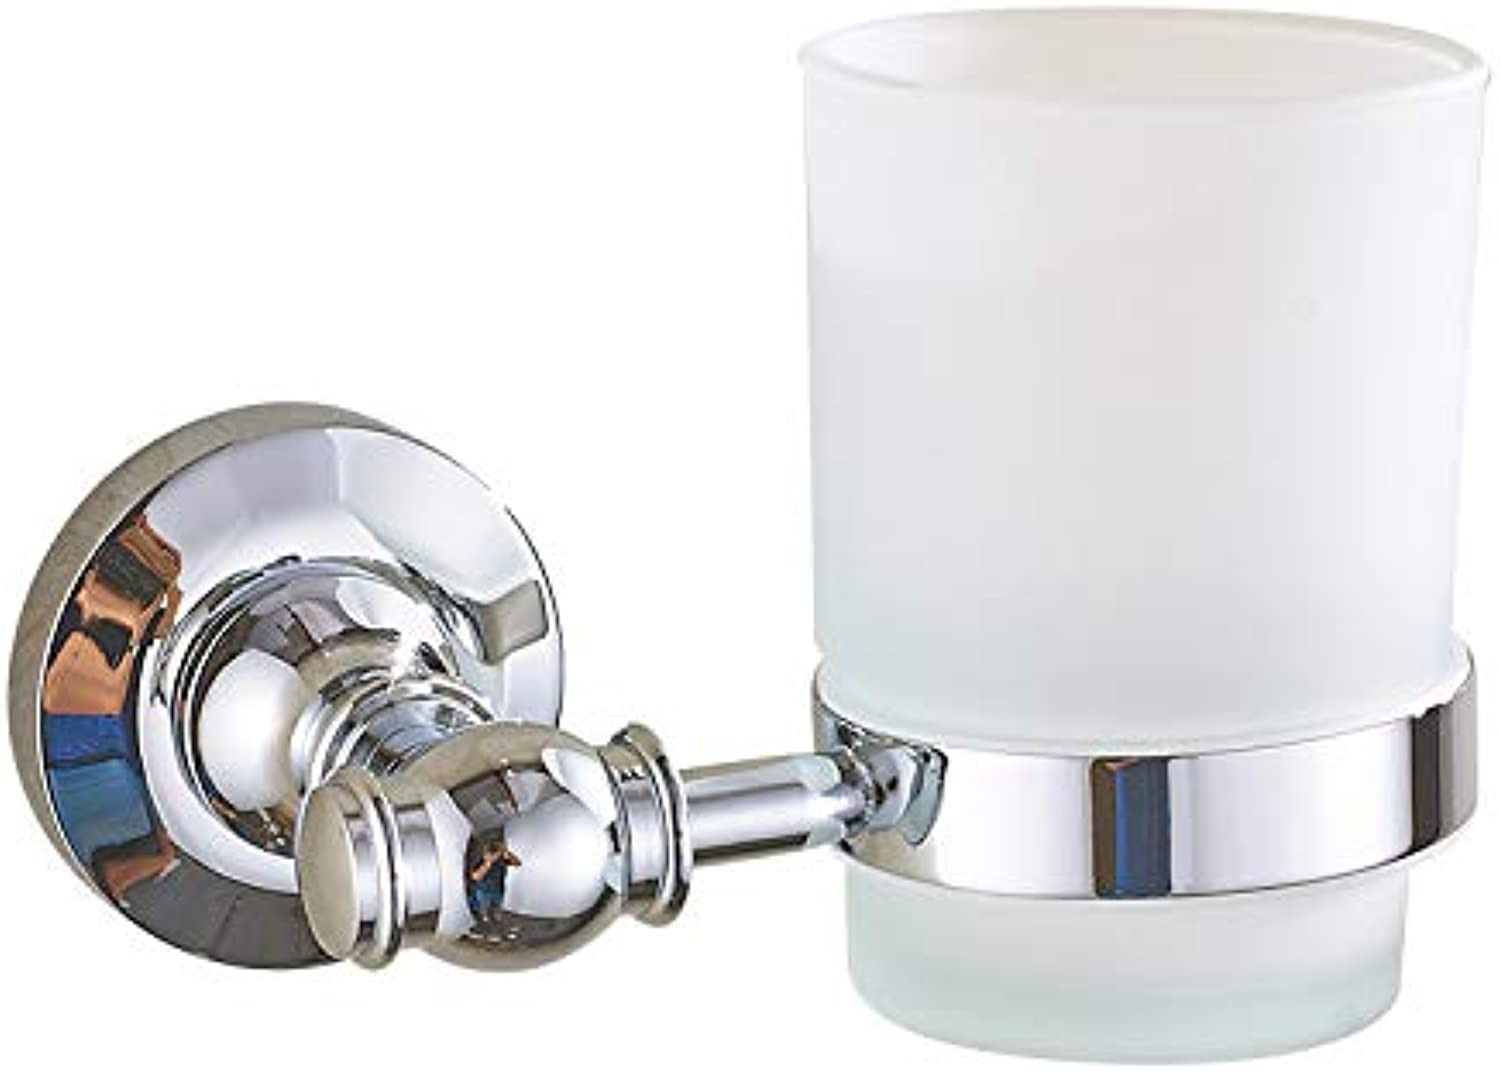 Bathroom Sink Basin Lever Mixer Tap Chrome-Plated Bathroom Toothbrush Cup Chrome-Plated Bathroom Toothbrush Cup Suite Single Apartment